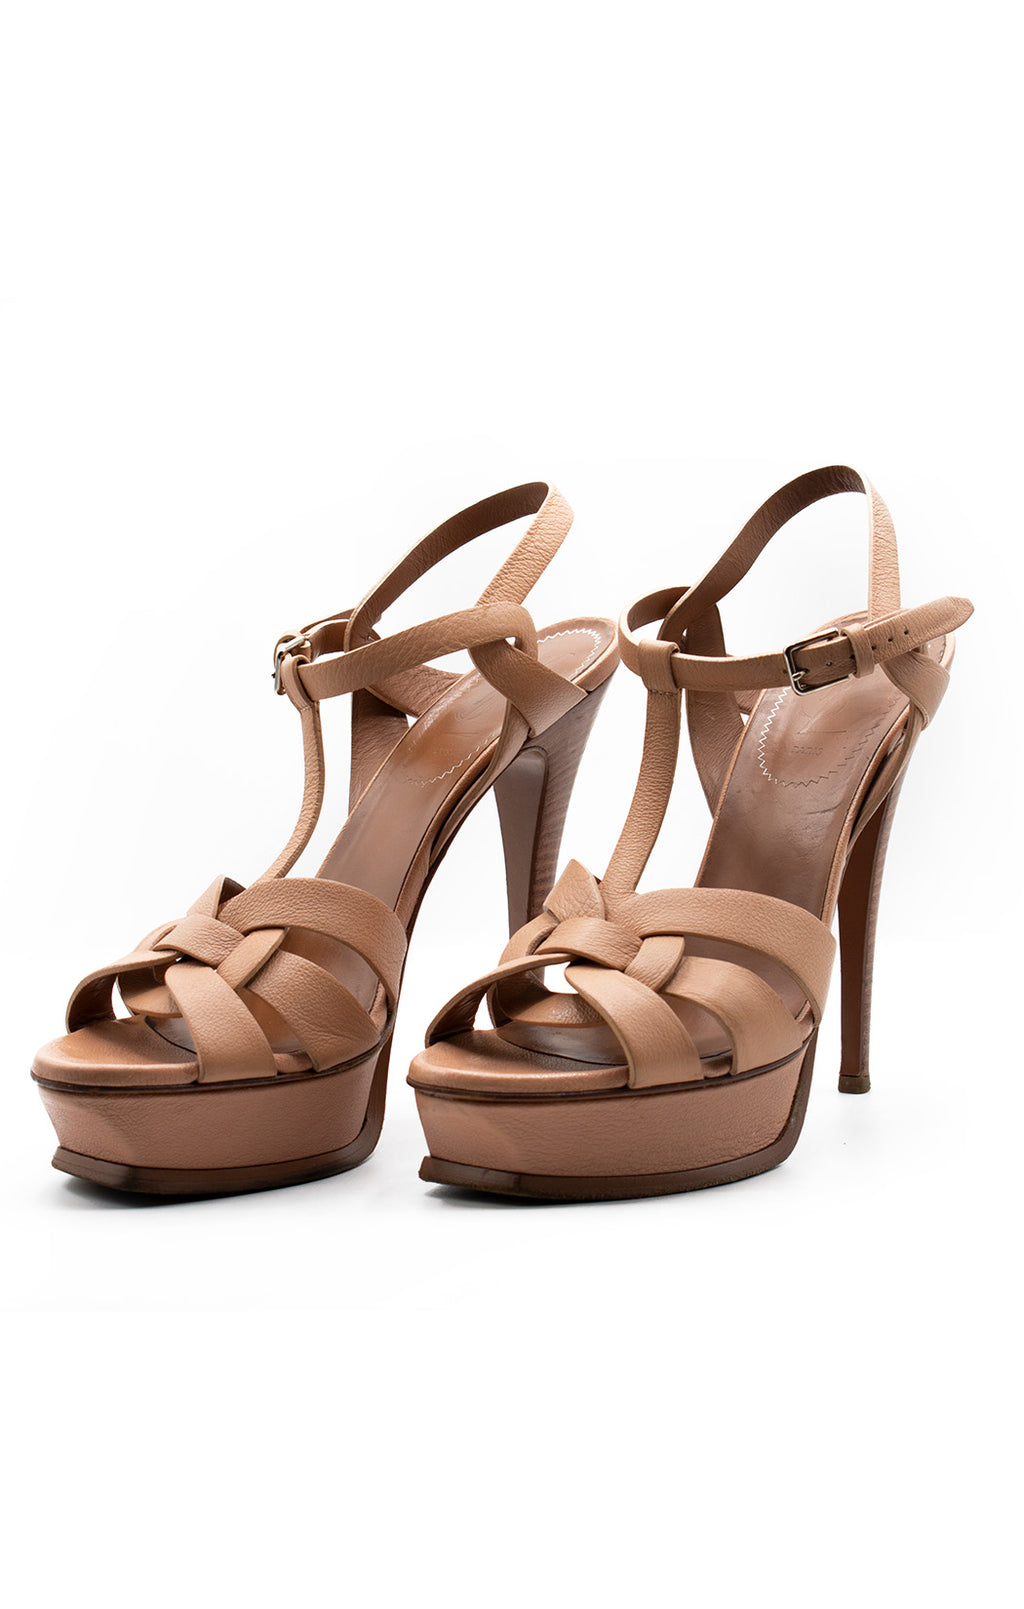 Front view YVES SAINT LAURENT Sandal Size: 9.5